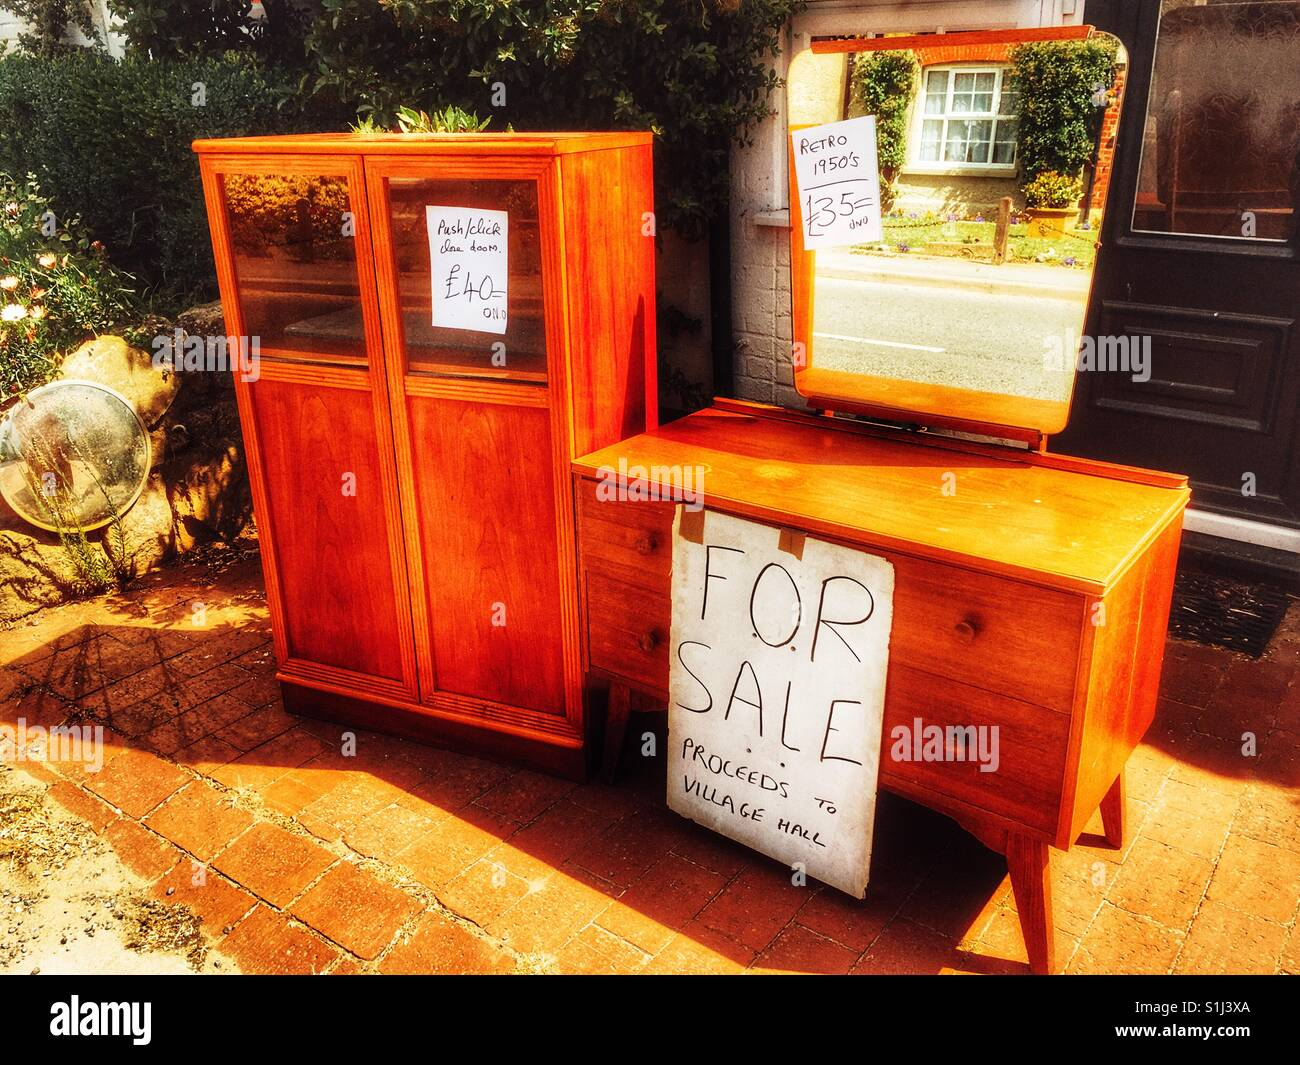 Secondhand furniture for sale outside house - Stock Image